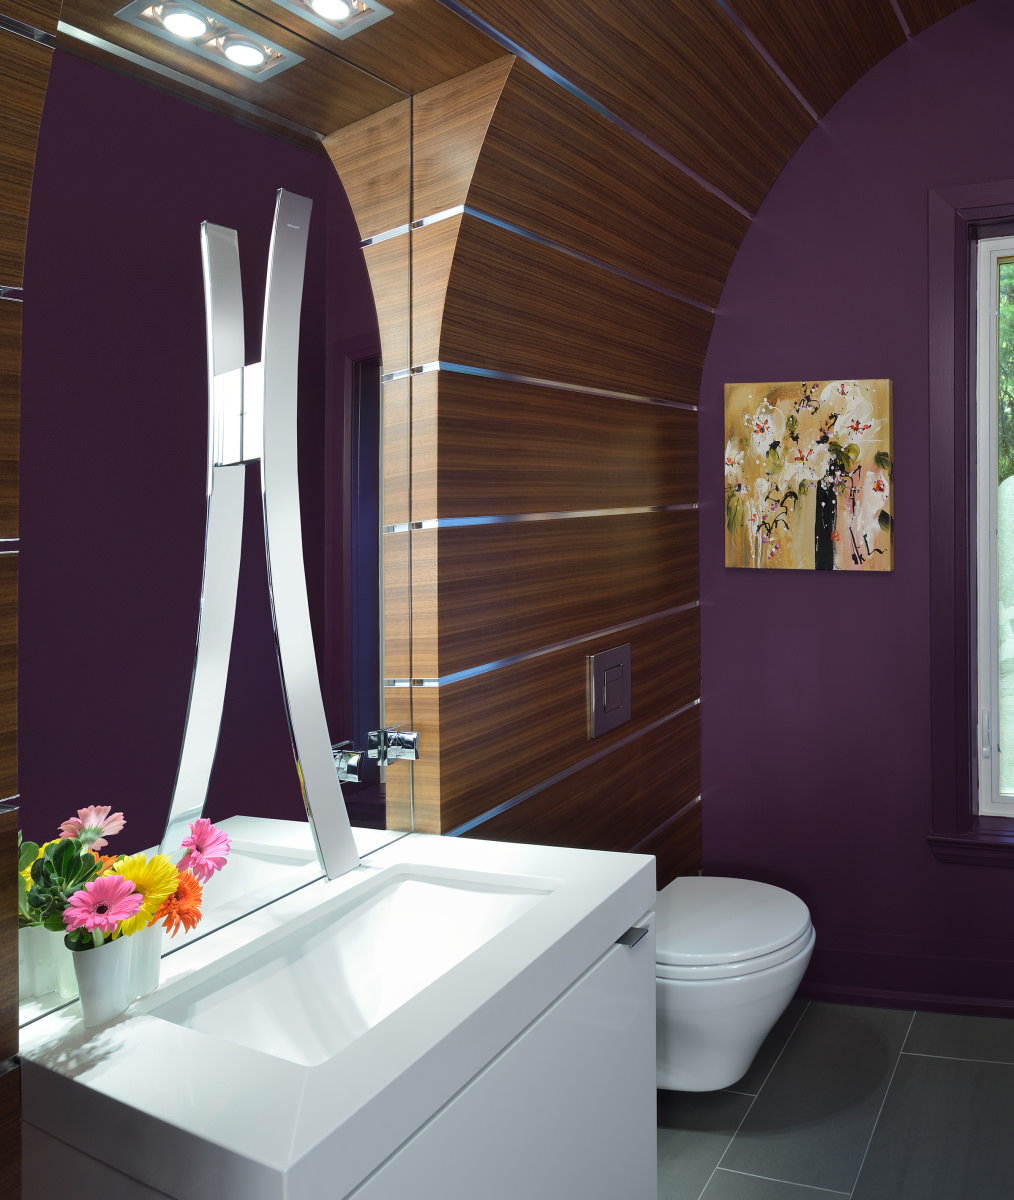 Trends bathroom fixture finishes before buying that new for Fixture finishes trends